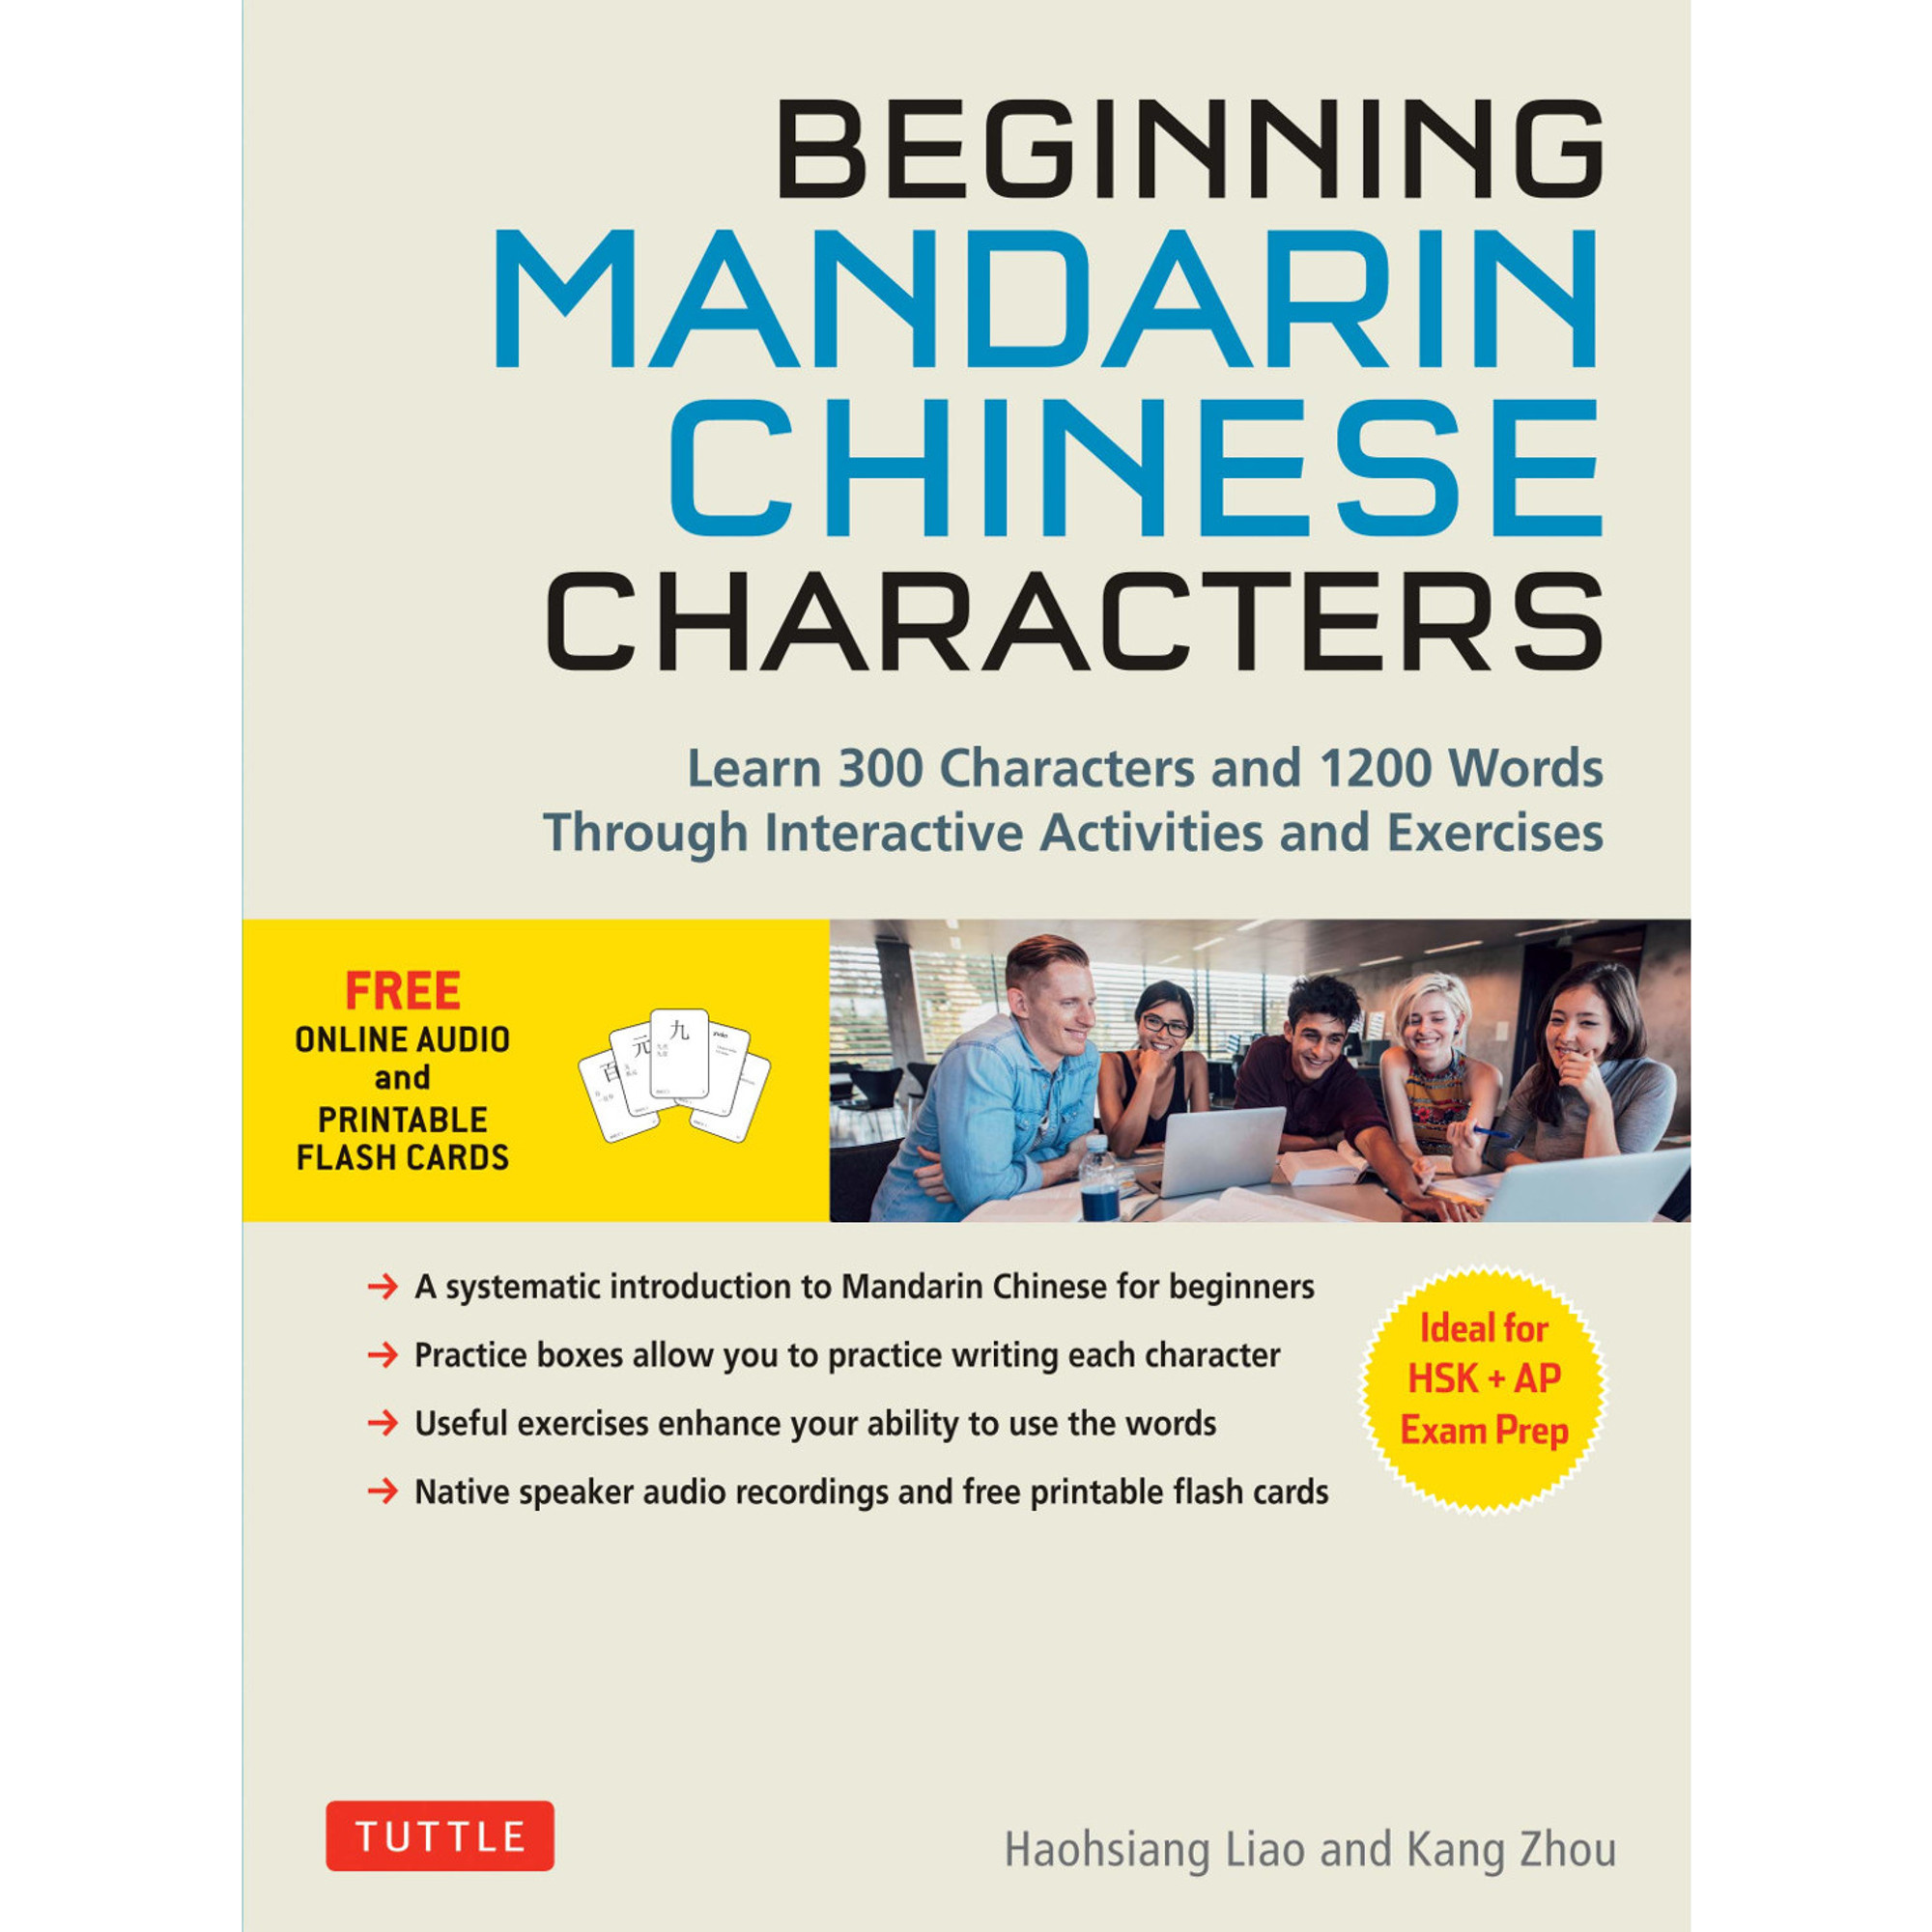 graphic about Chinese Flash Cards Printable named Setting up Mandarin Chinese People